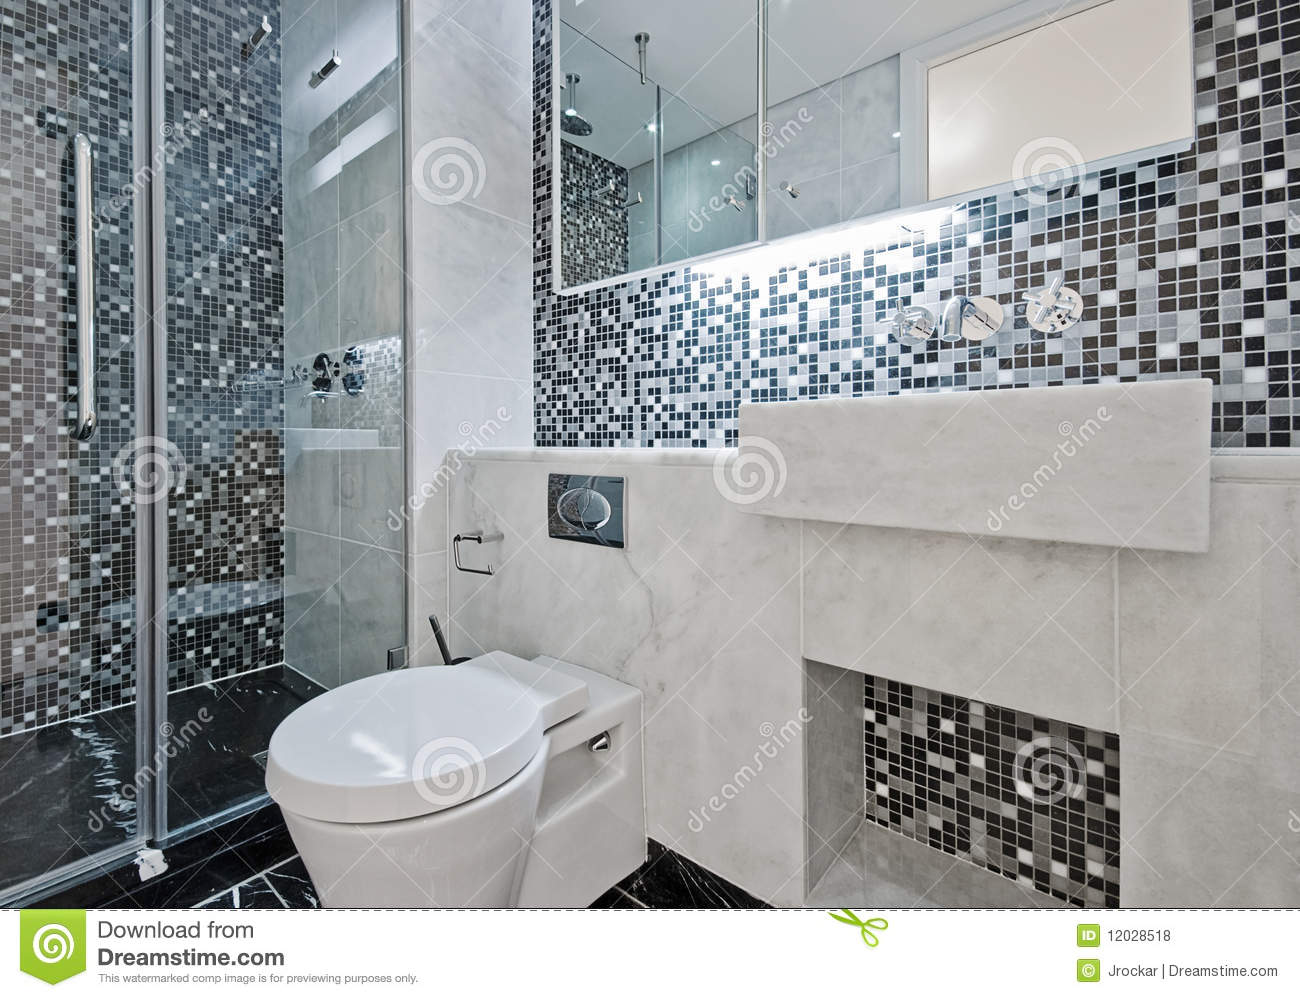 Azulejos Baño Mosaico:Bathroom with Mosaic Tiles